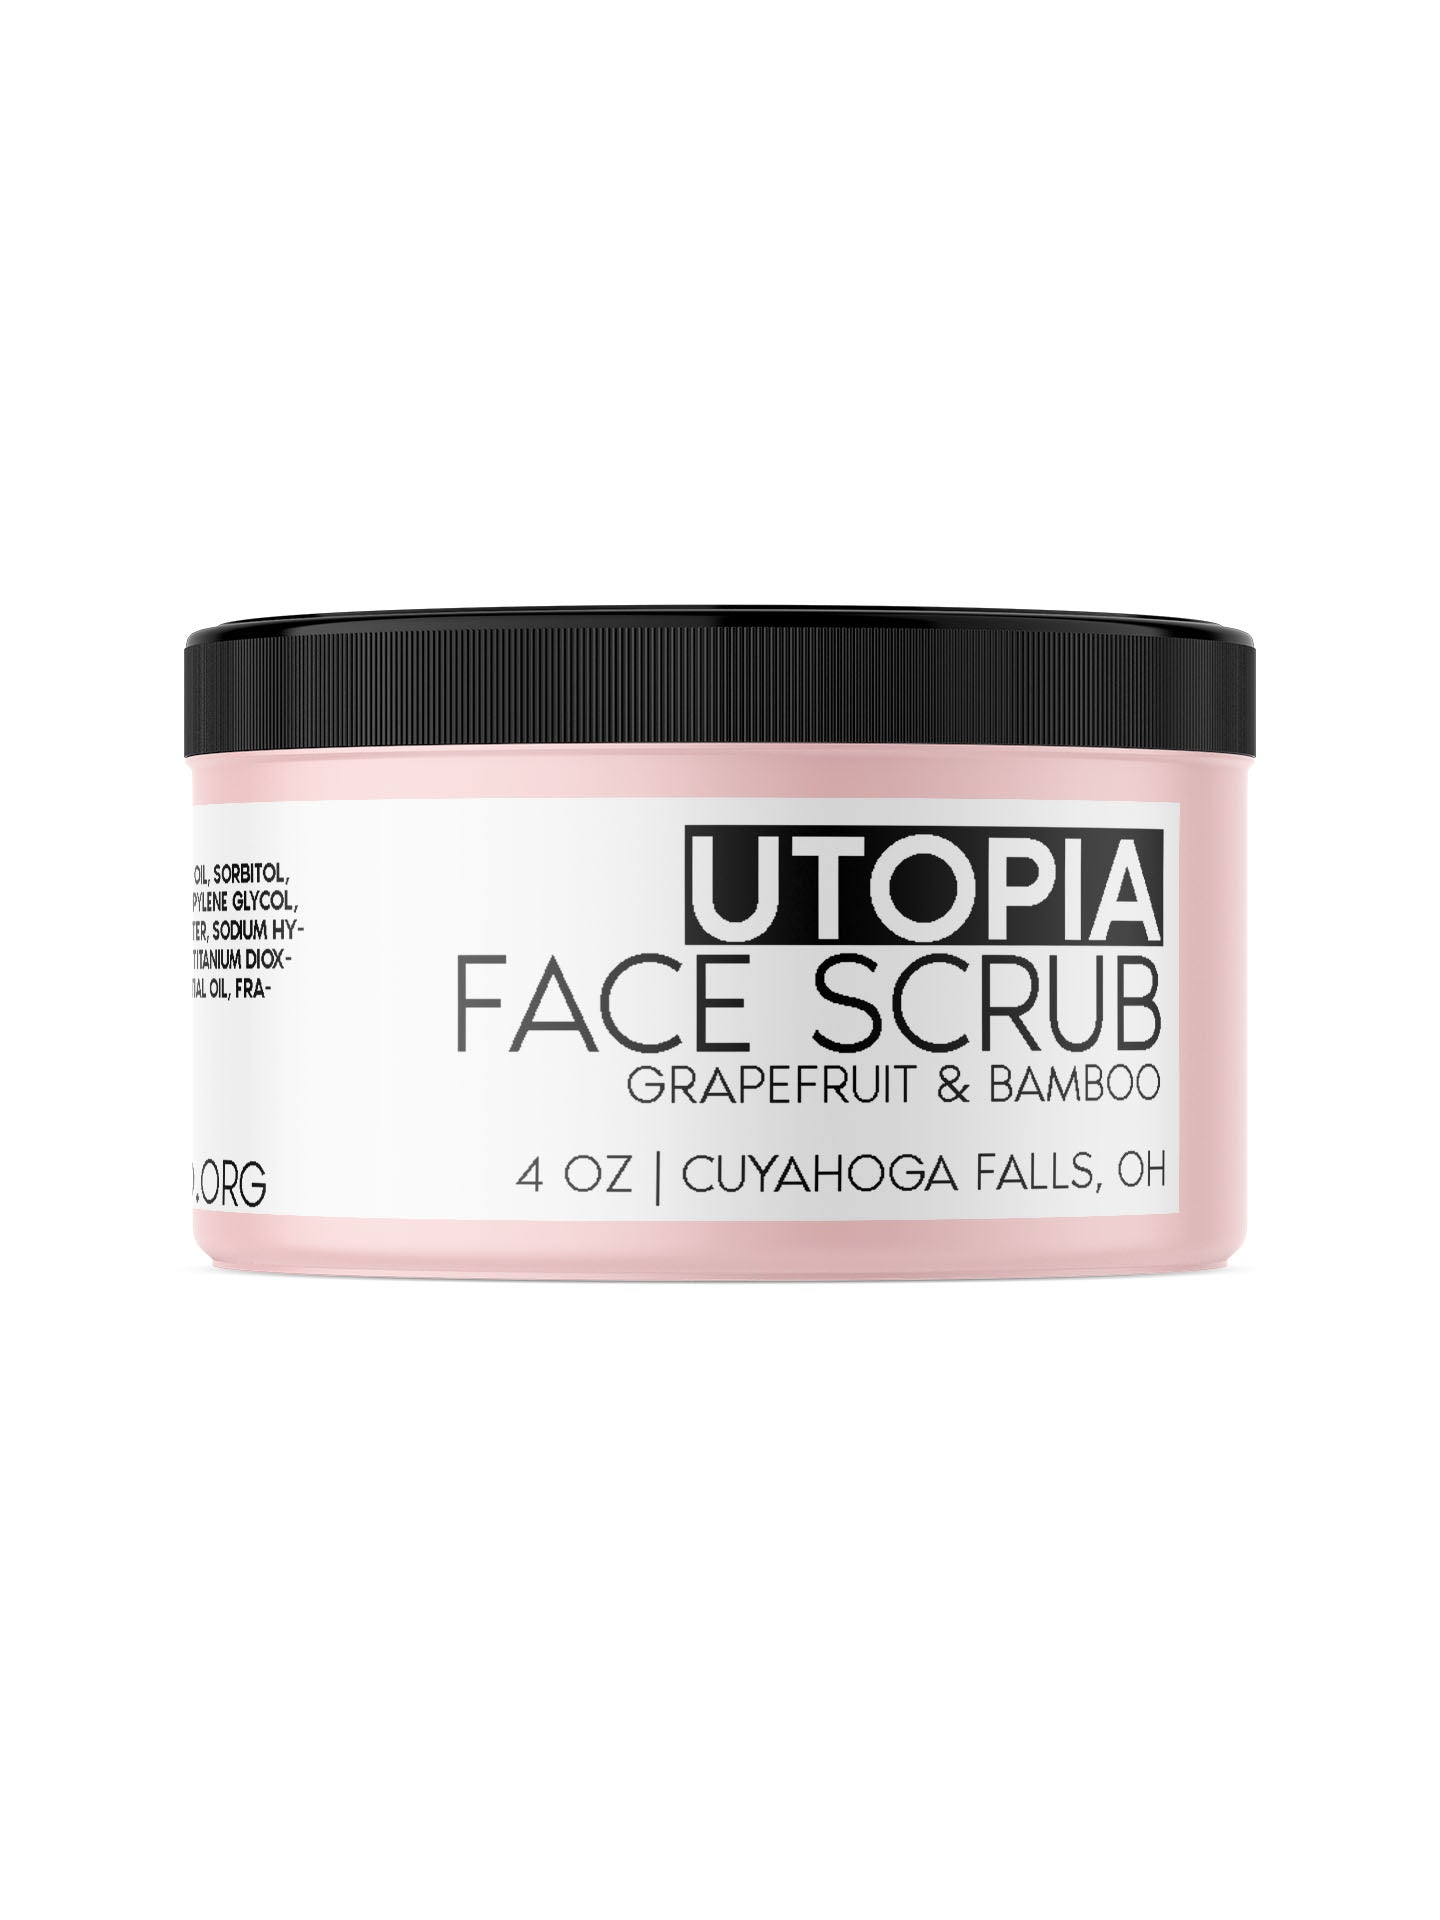 Utopia Face Scrub